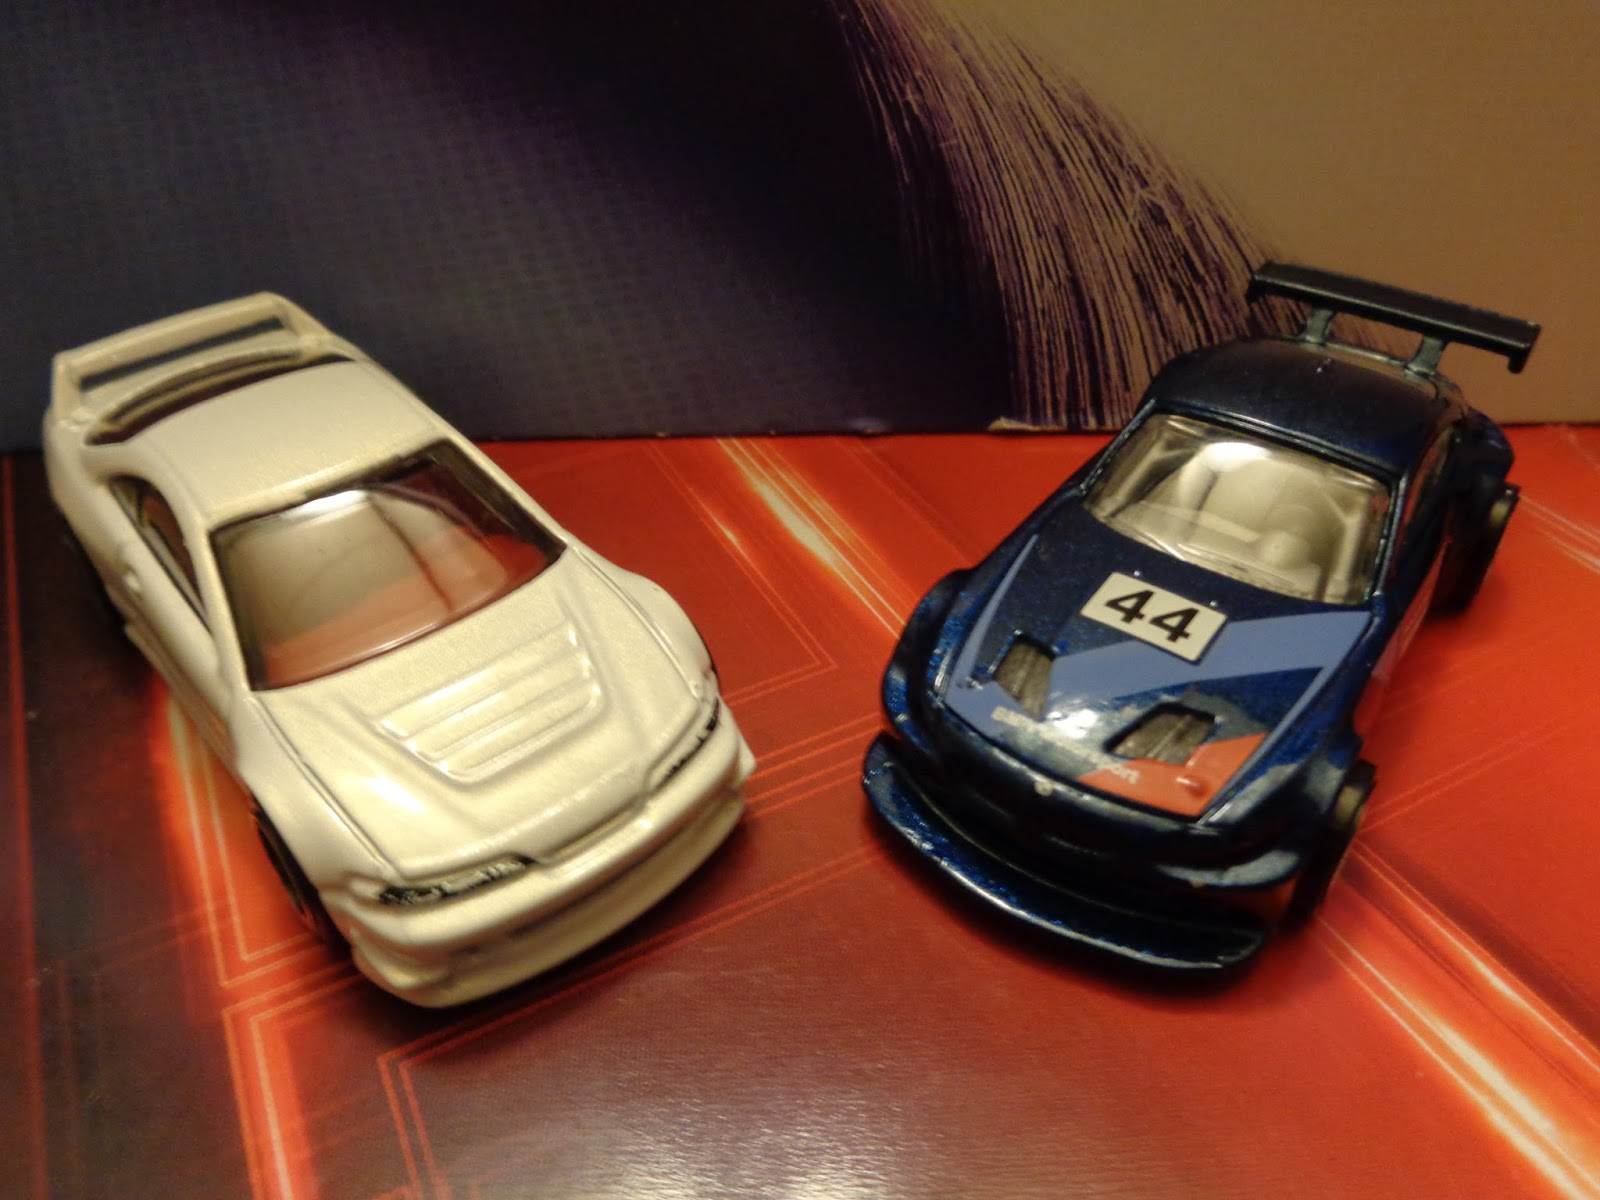 J And J Toys Hot Wheels Acura Integra Gsr Bmw Z4 Motorsport